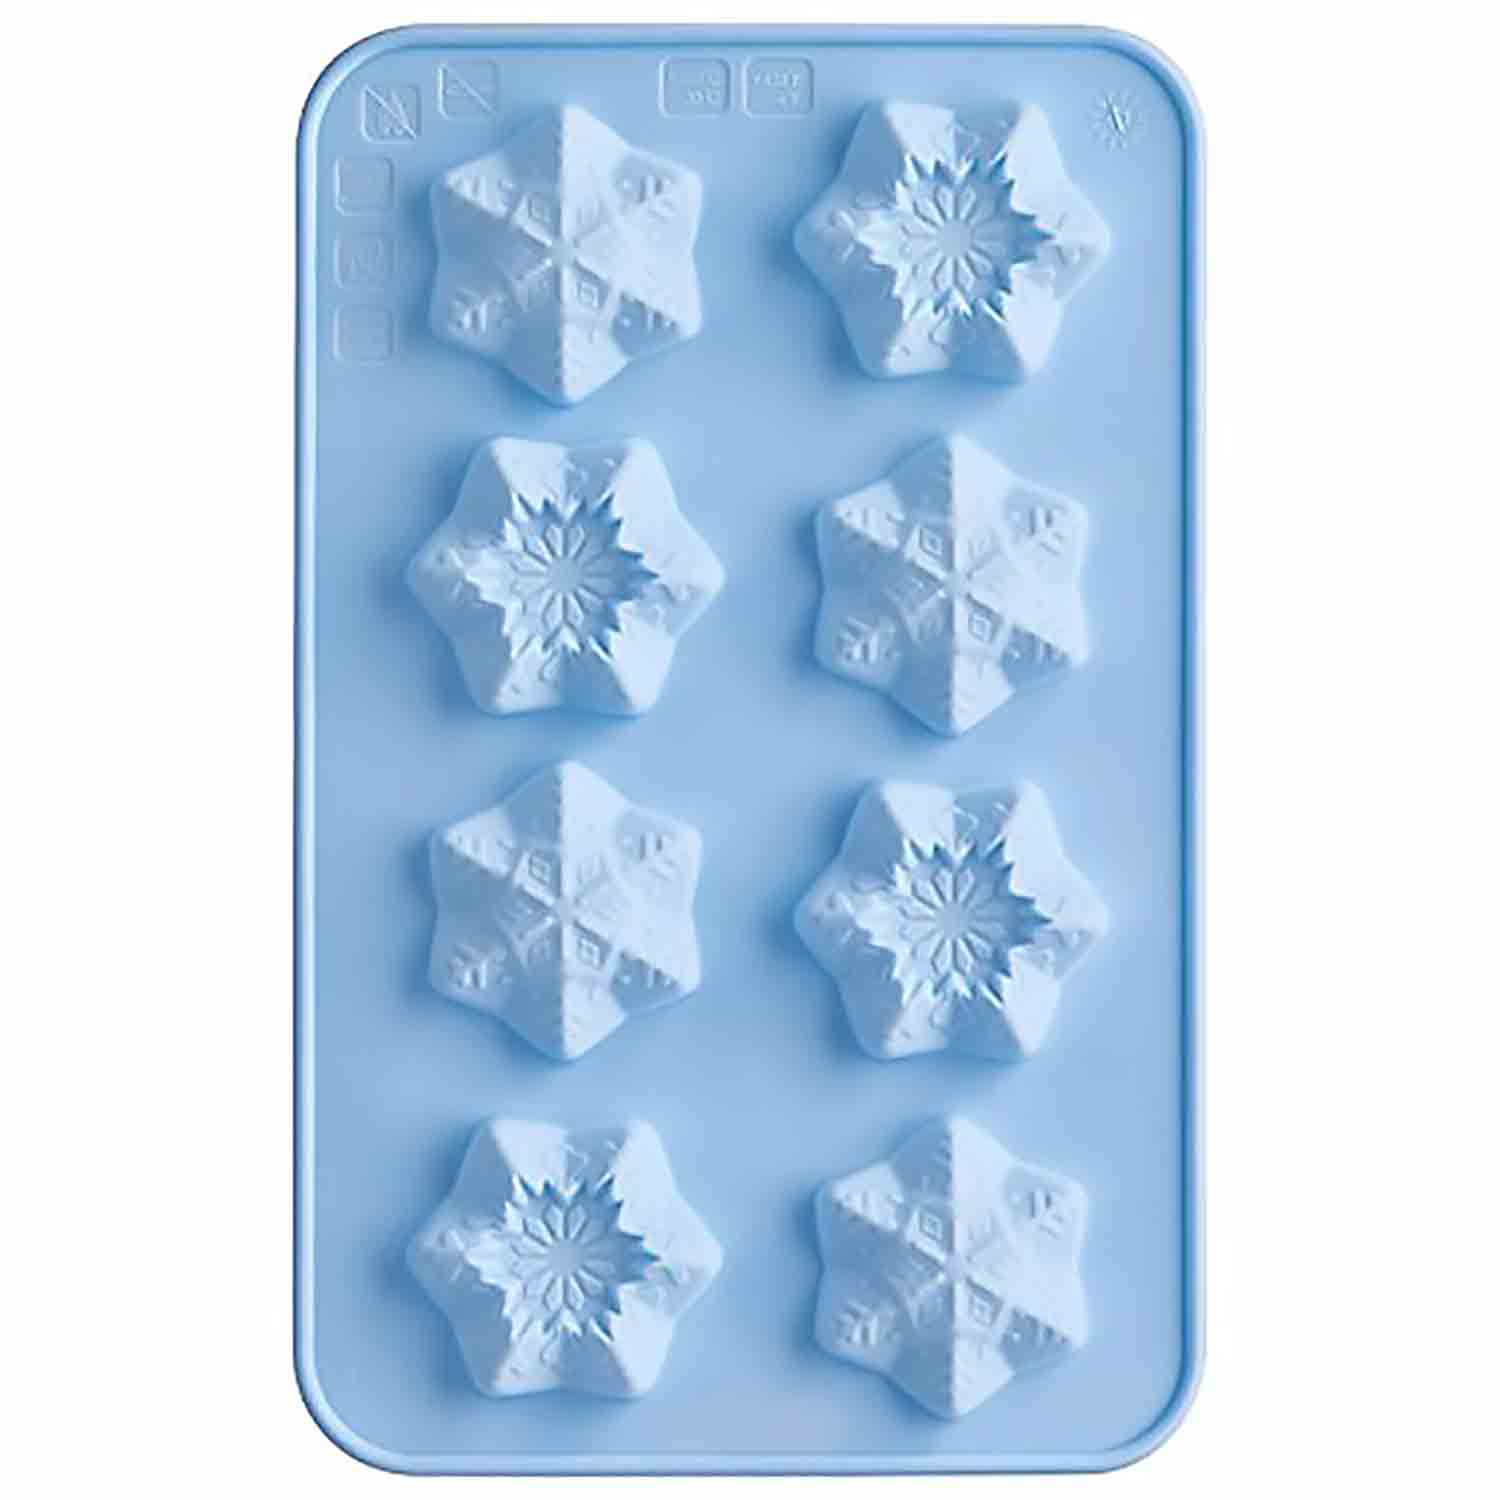 Snowflakes Chocolate Candy Mold